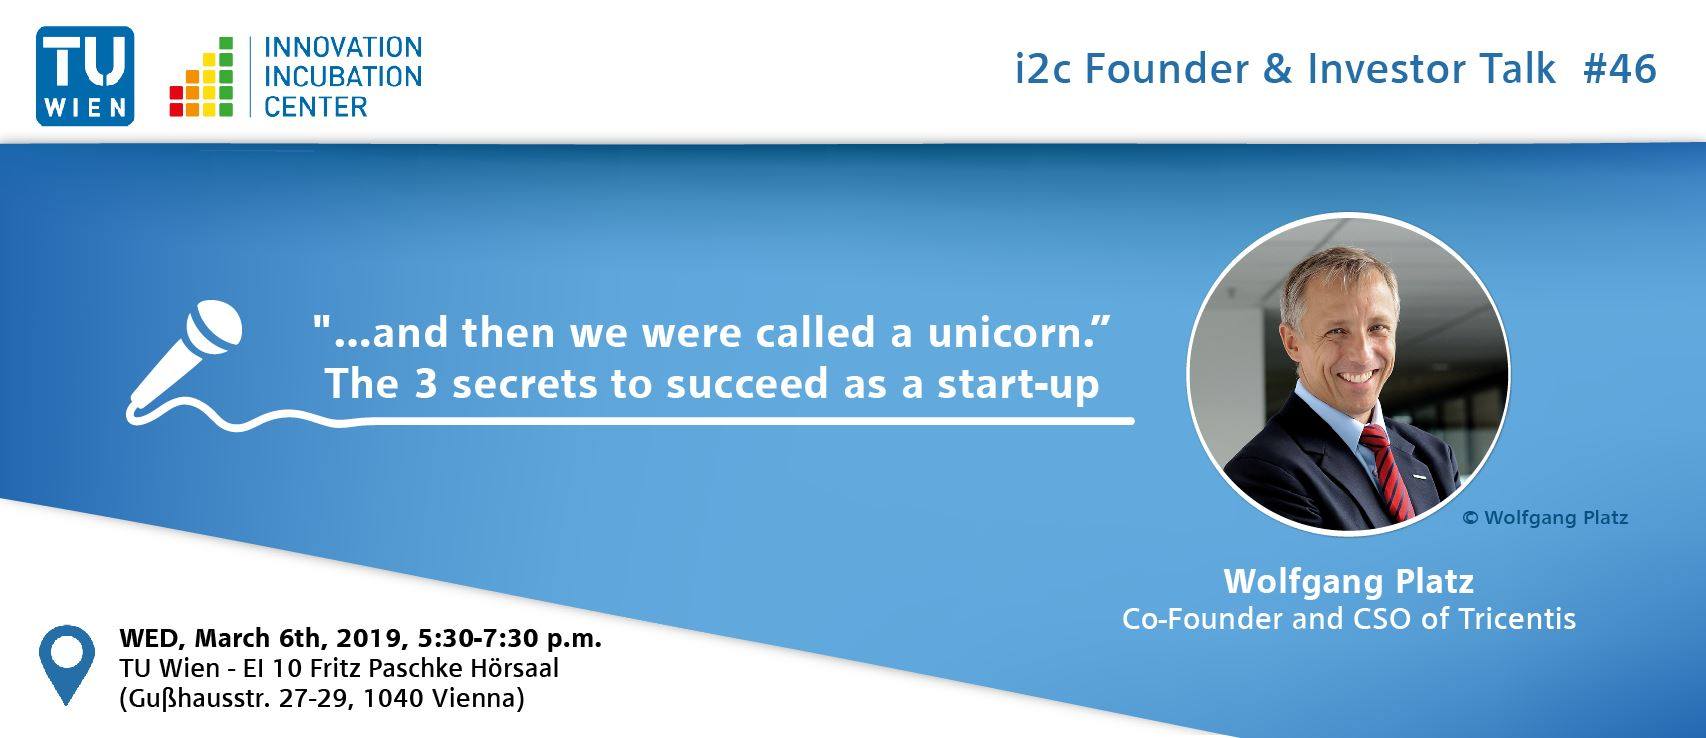 "i²c Founder & Investor Talk #46: """"…and then we were called a unicorn."" – The 3 secrets to succeed as a start-up"""